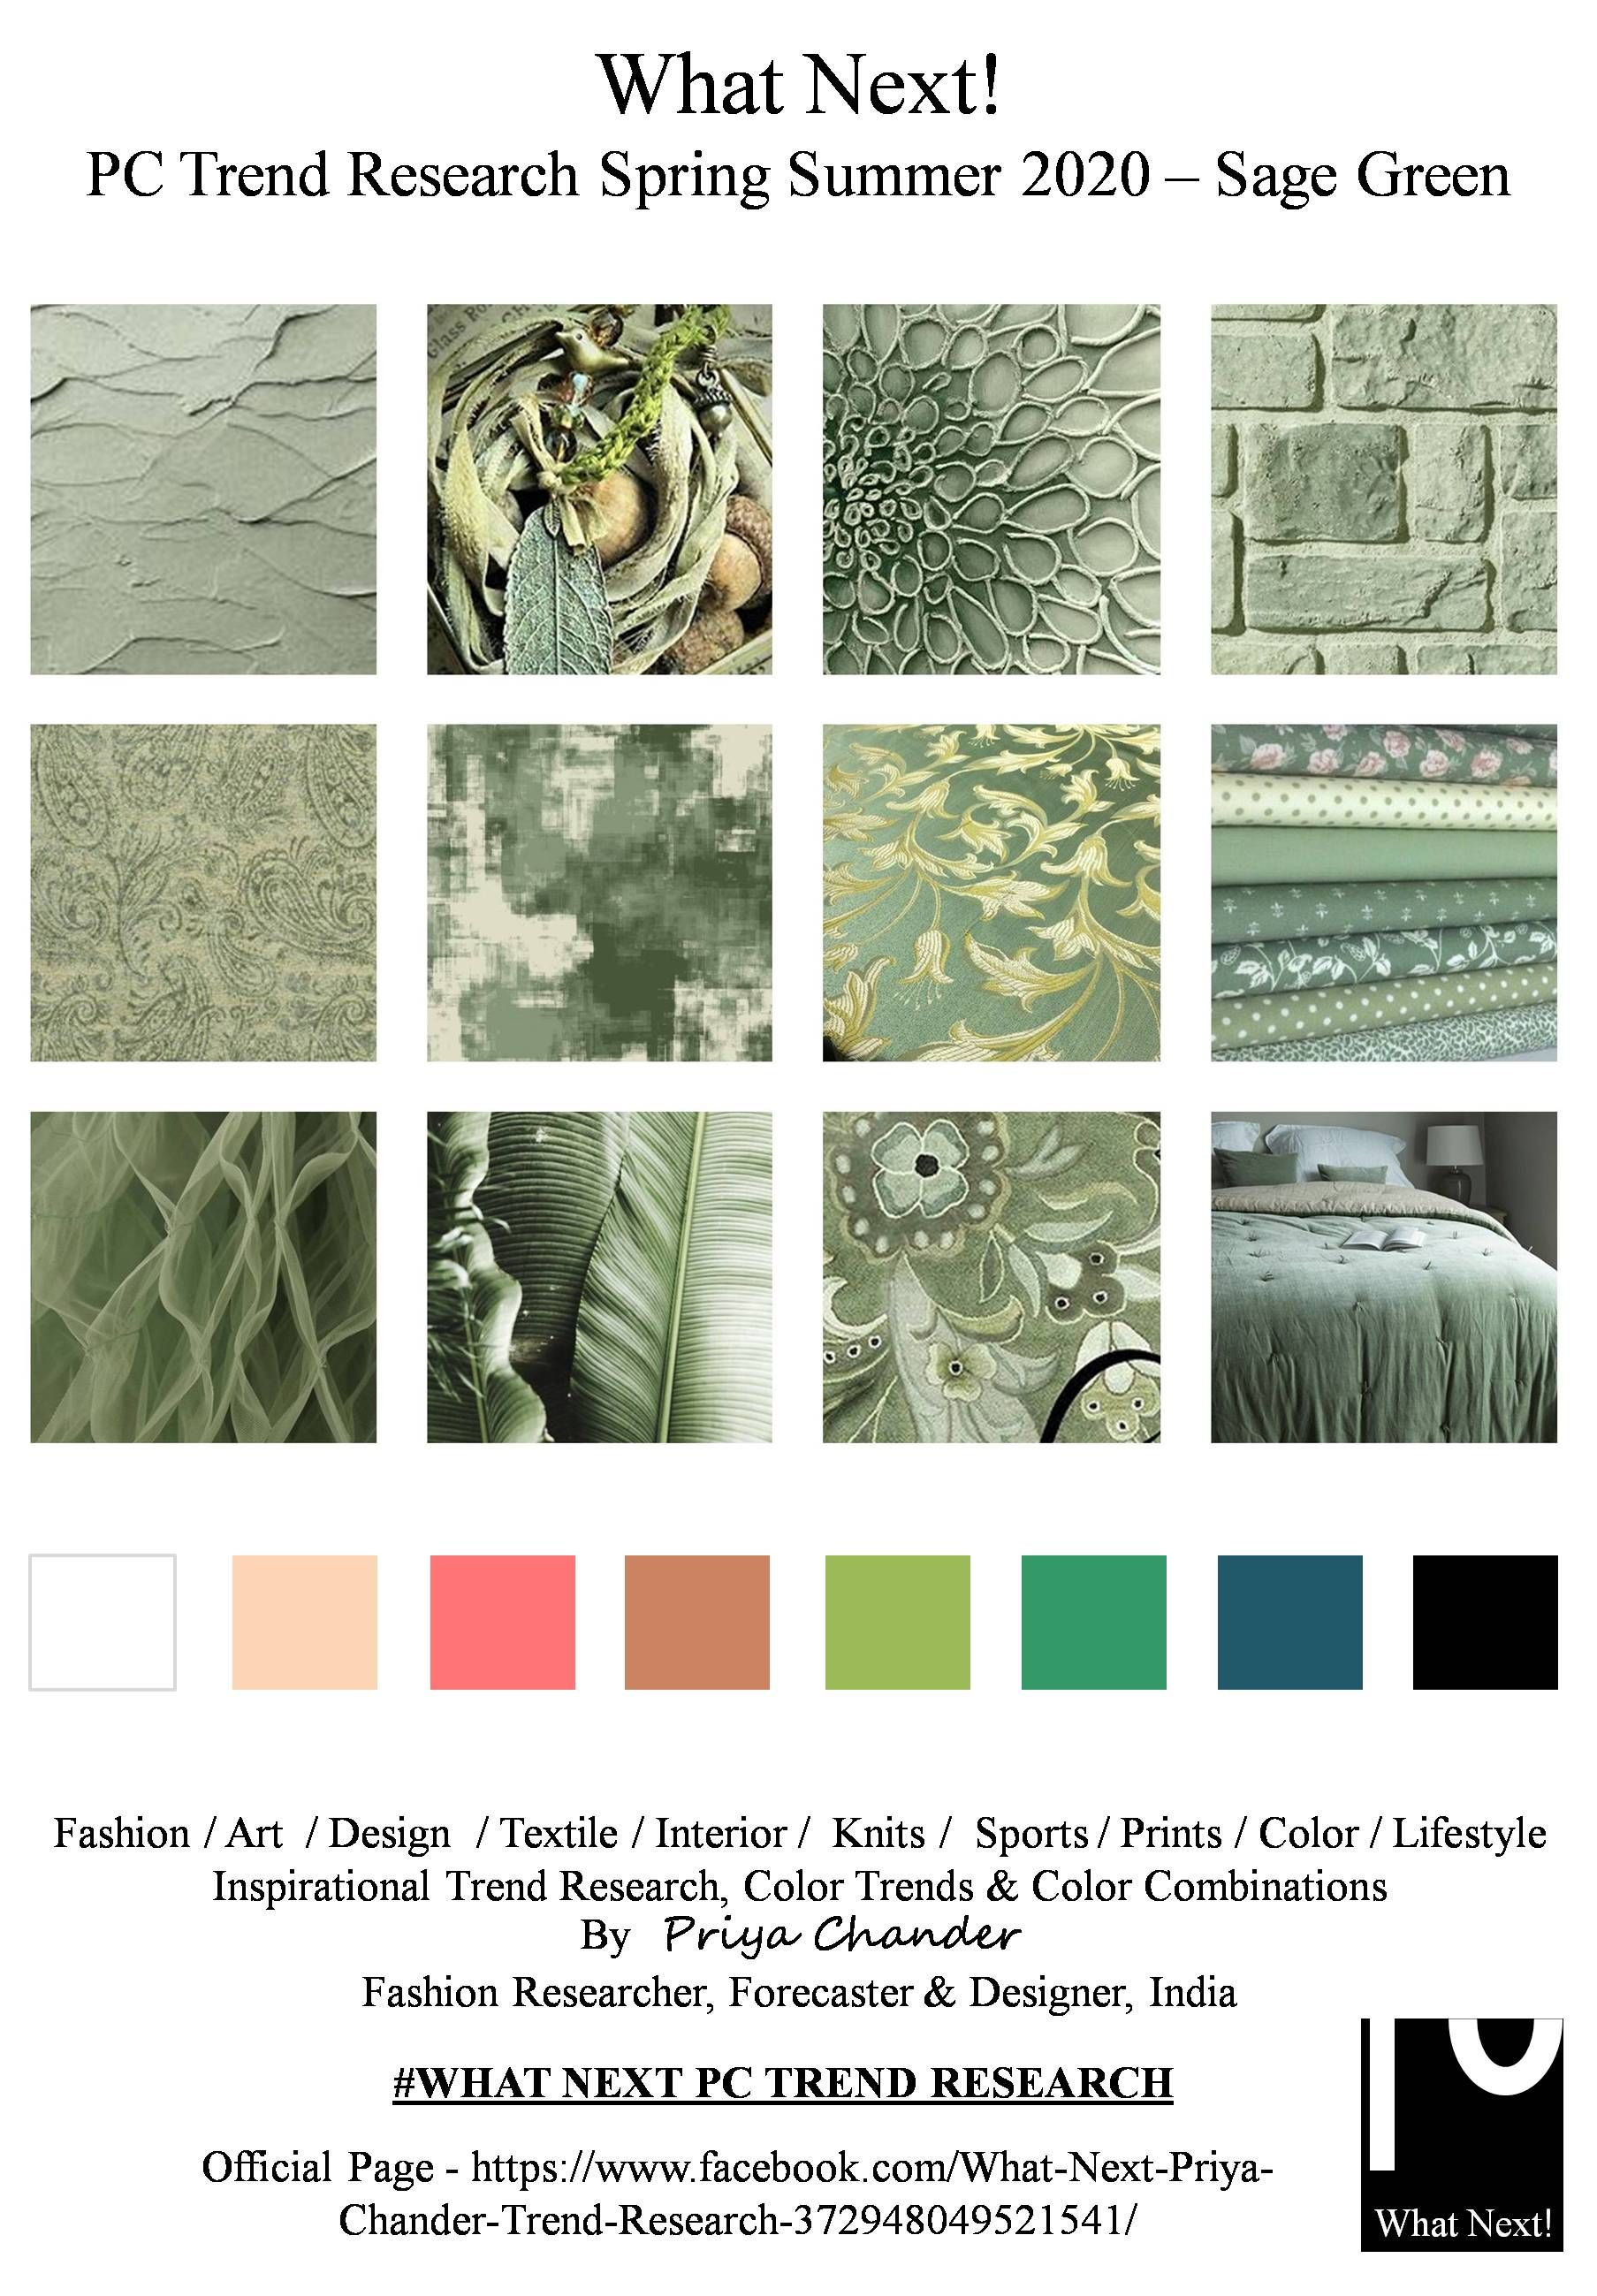 SAGE GREEN 2020 | SS20 | Fashion forecasting, Color trends ...